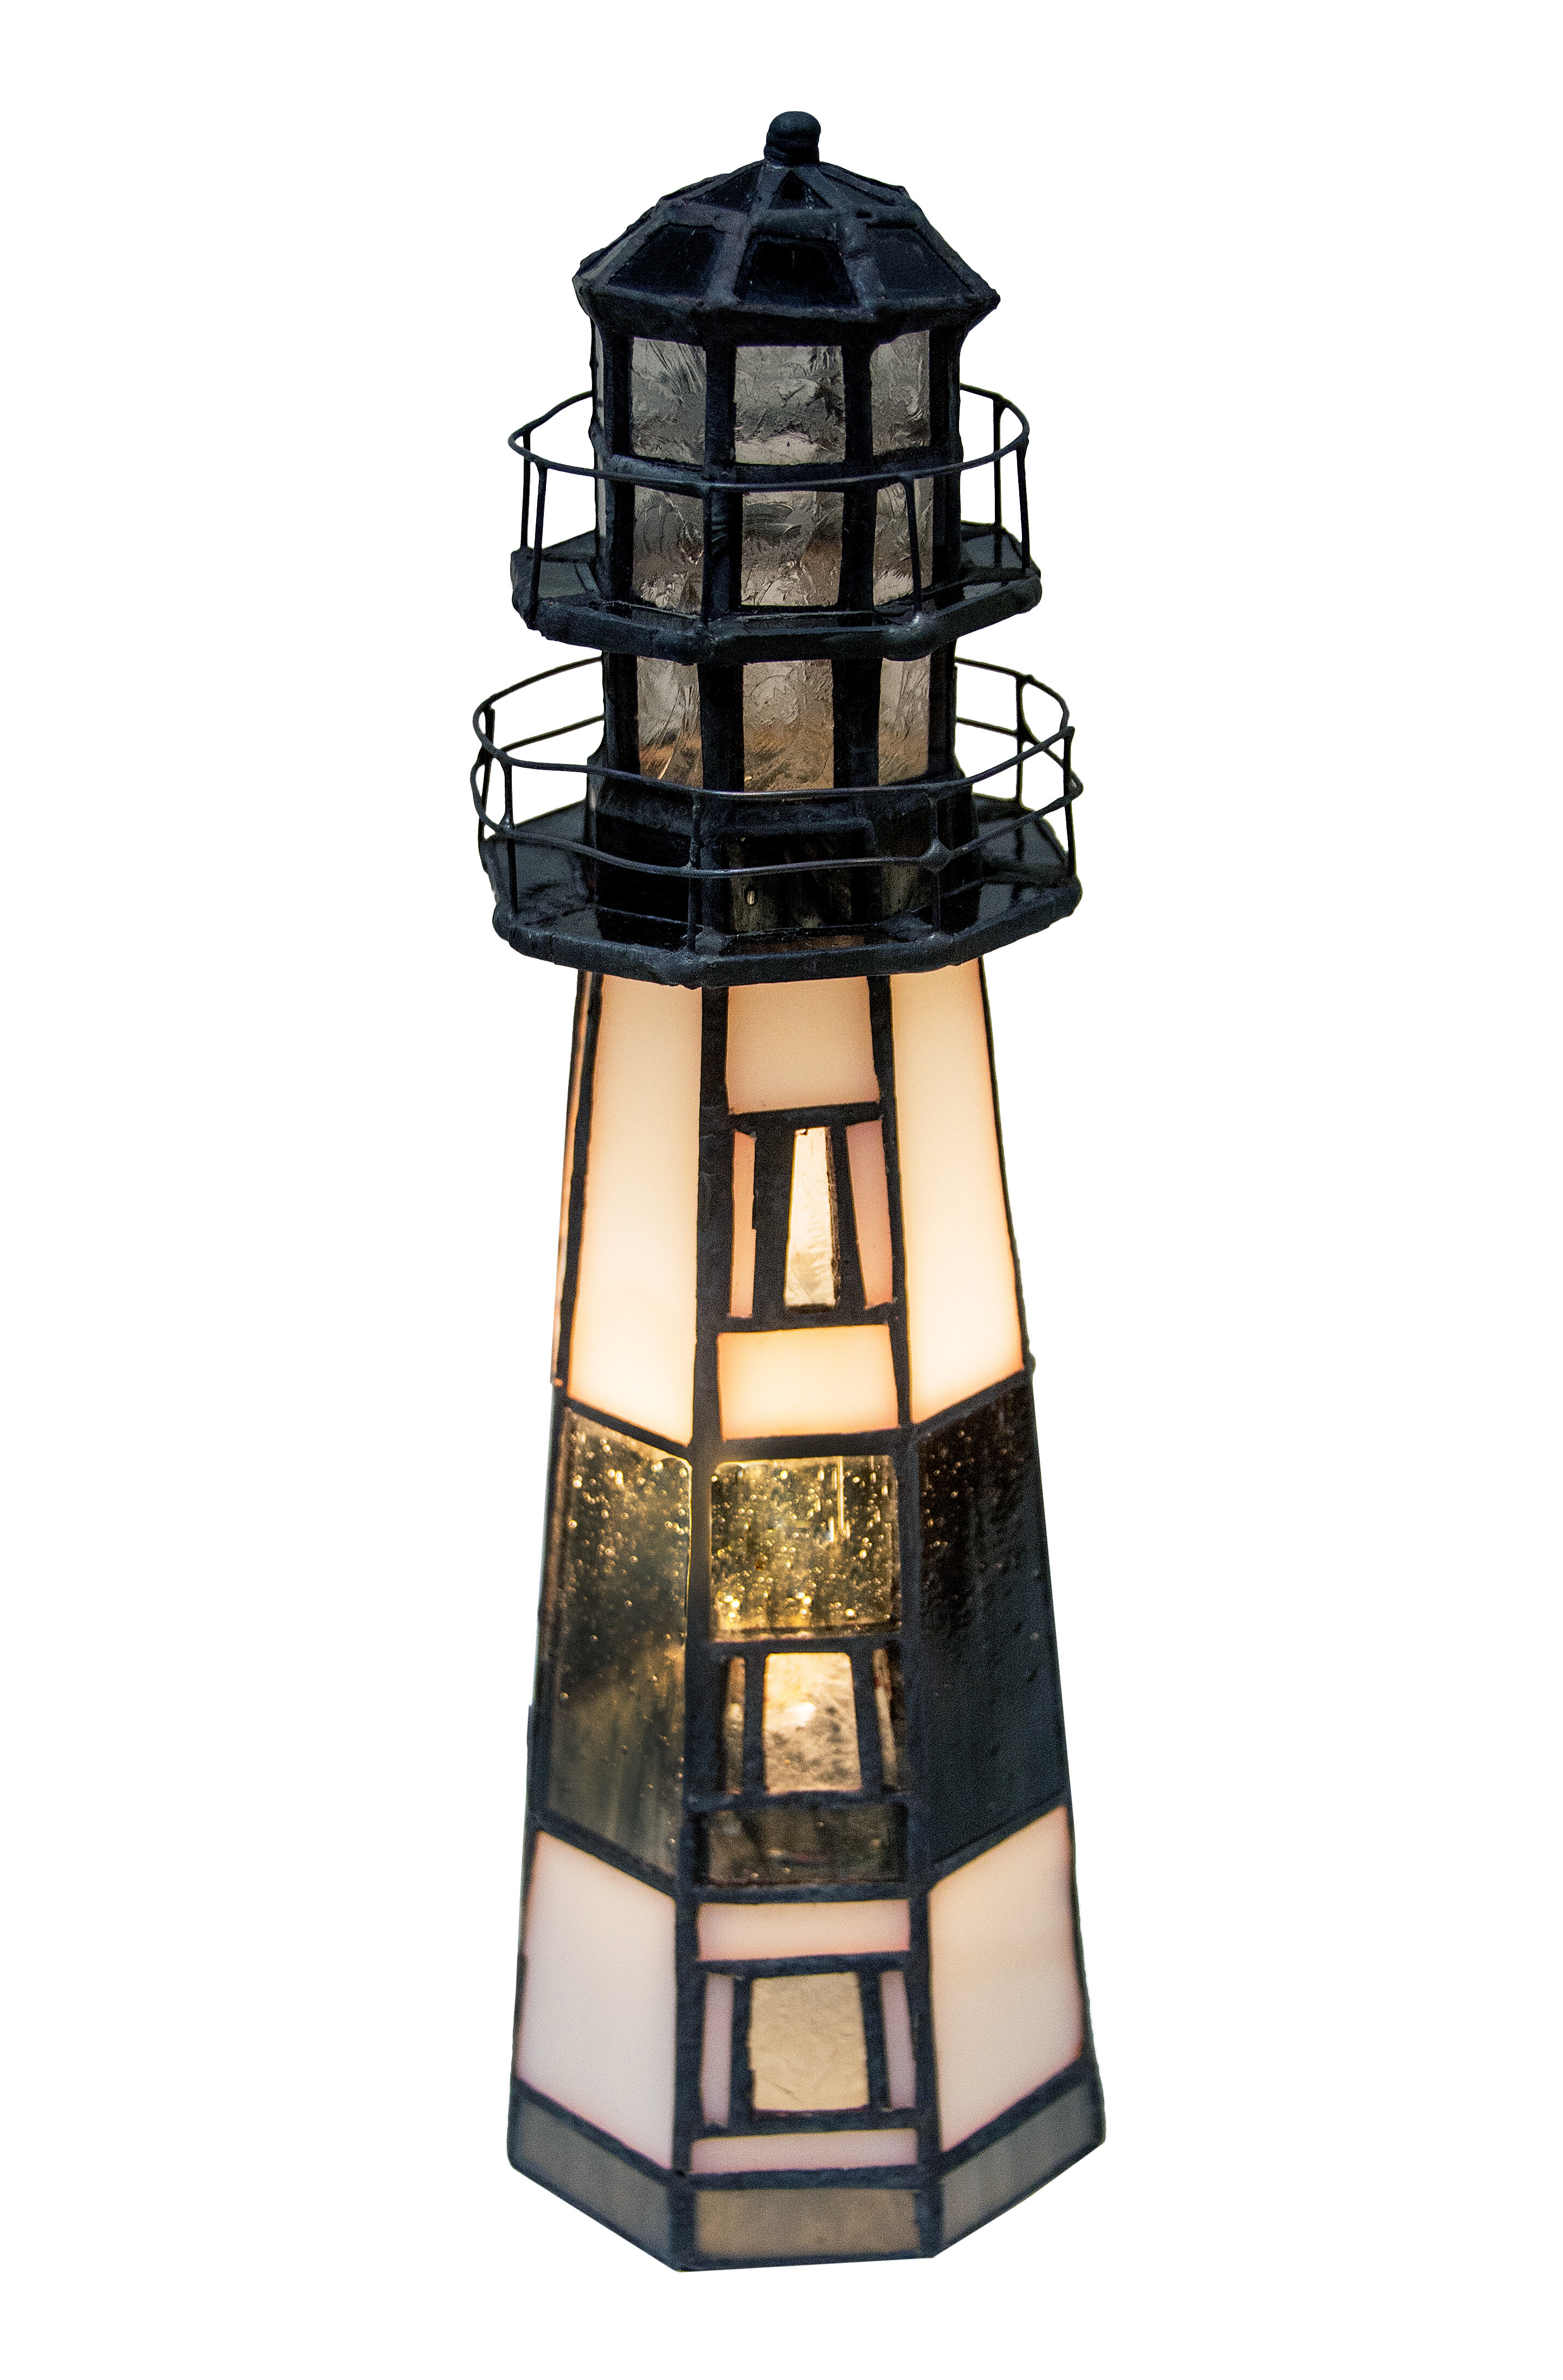 Meyda Tiffany Montauk Point Lighthouse 9 5 Table Lamp Reviews